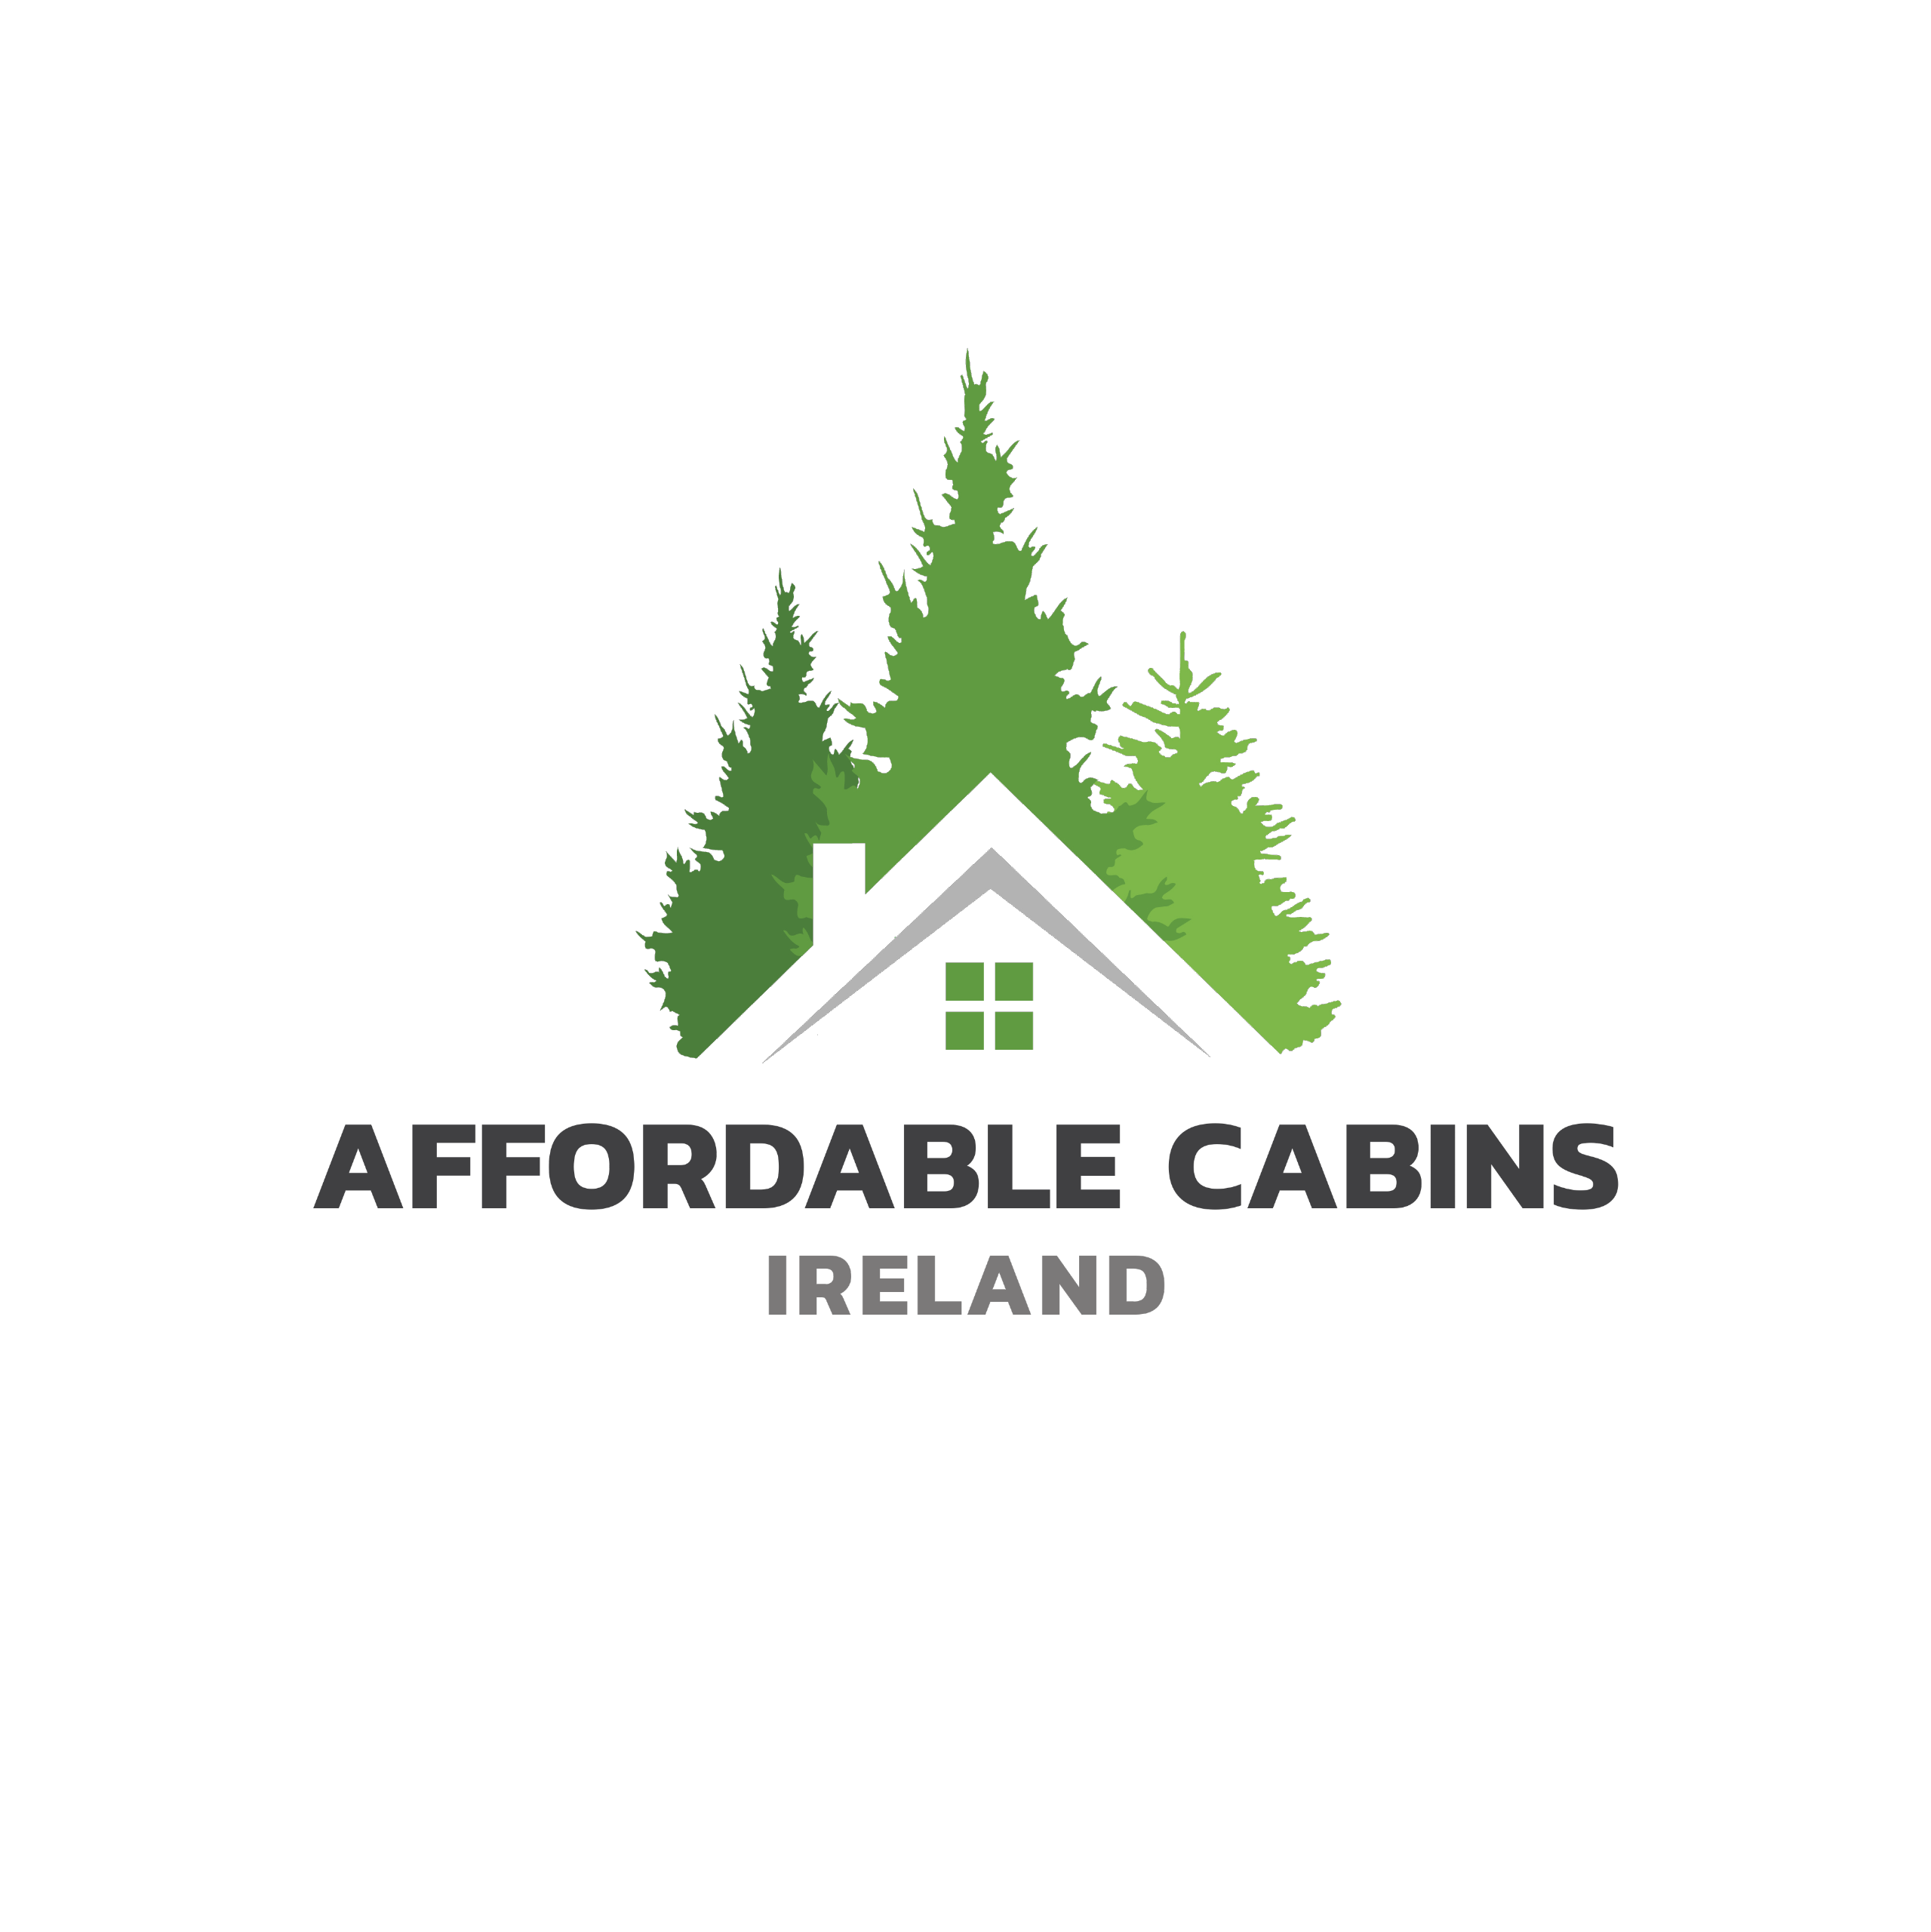 Affordable Cabins Ireland